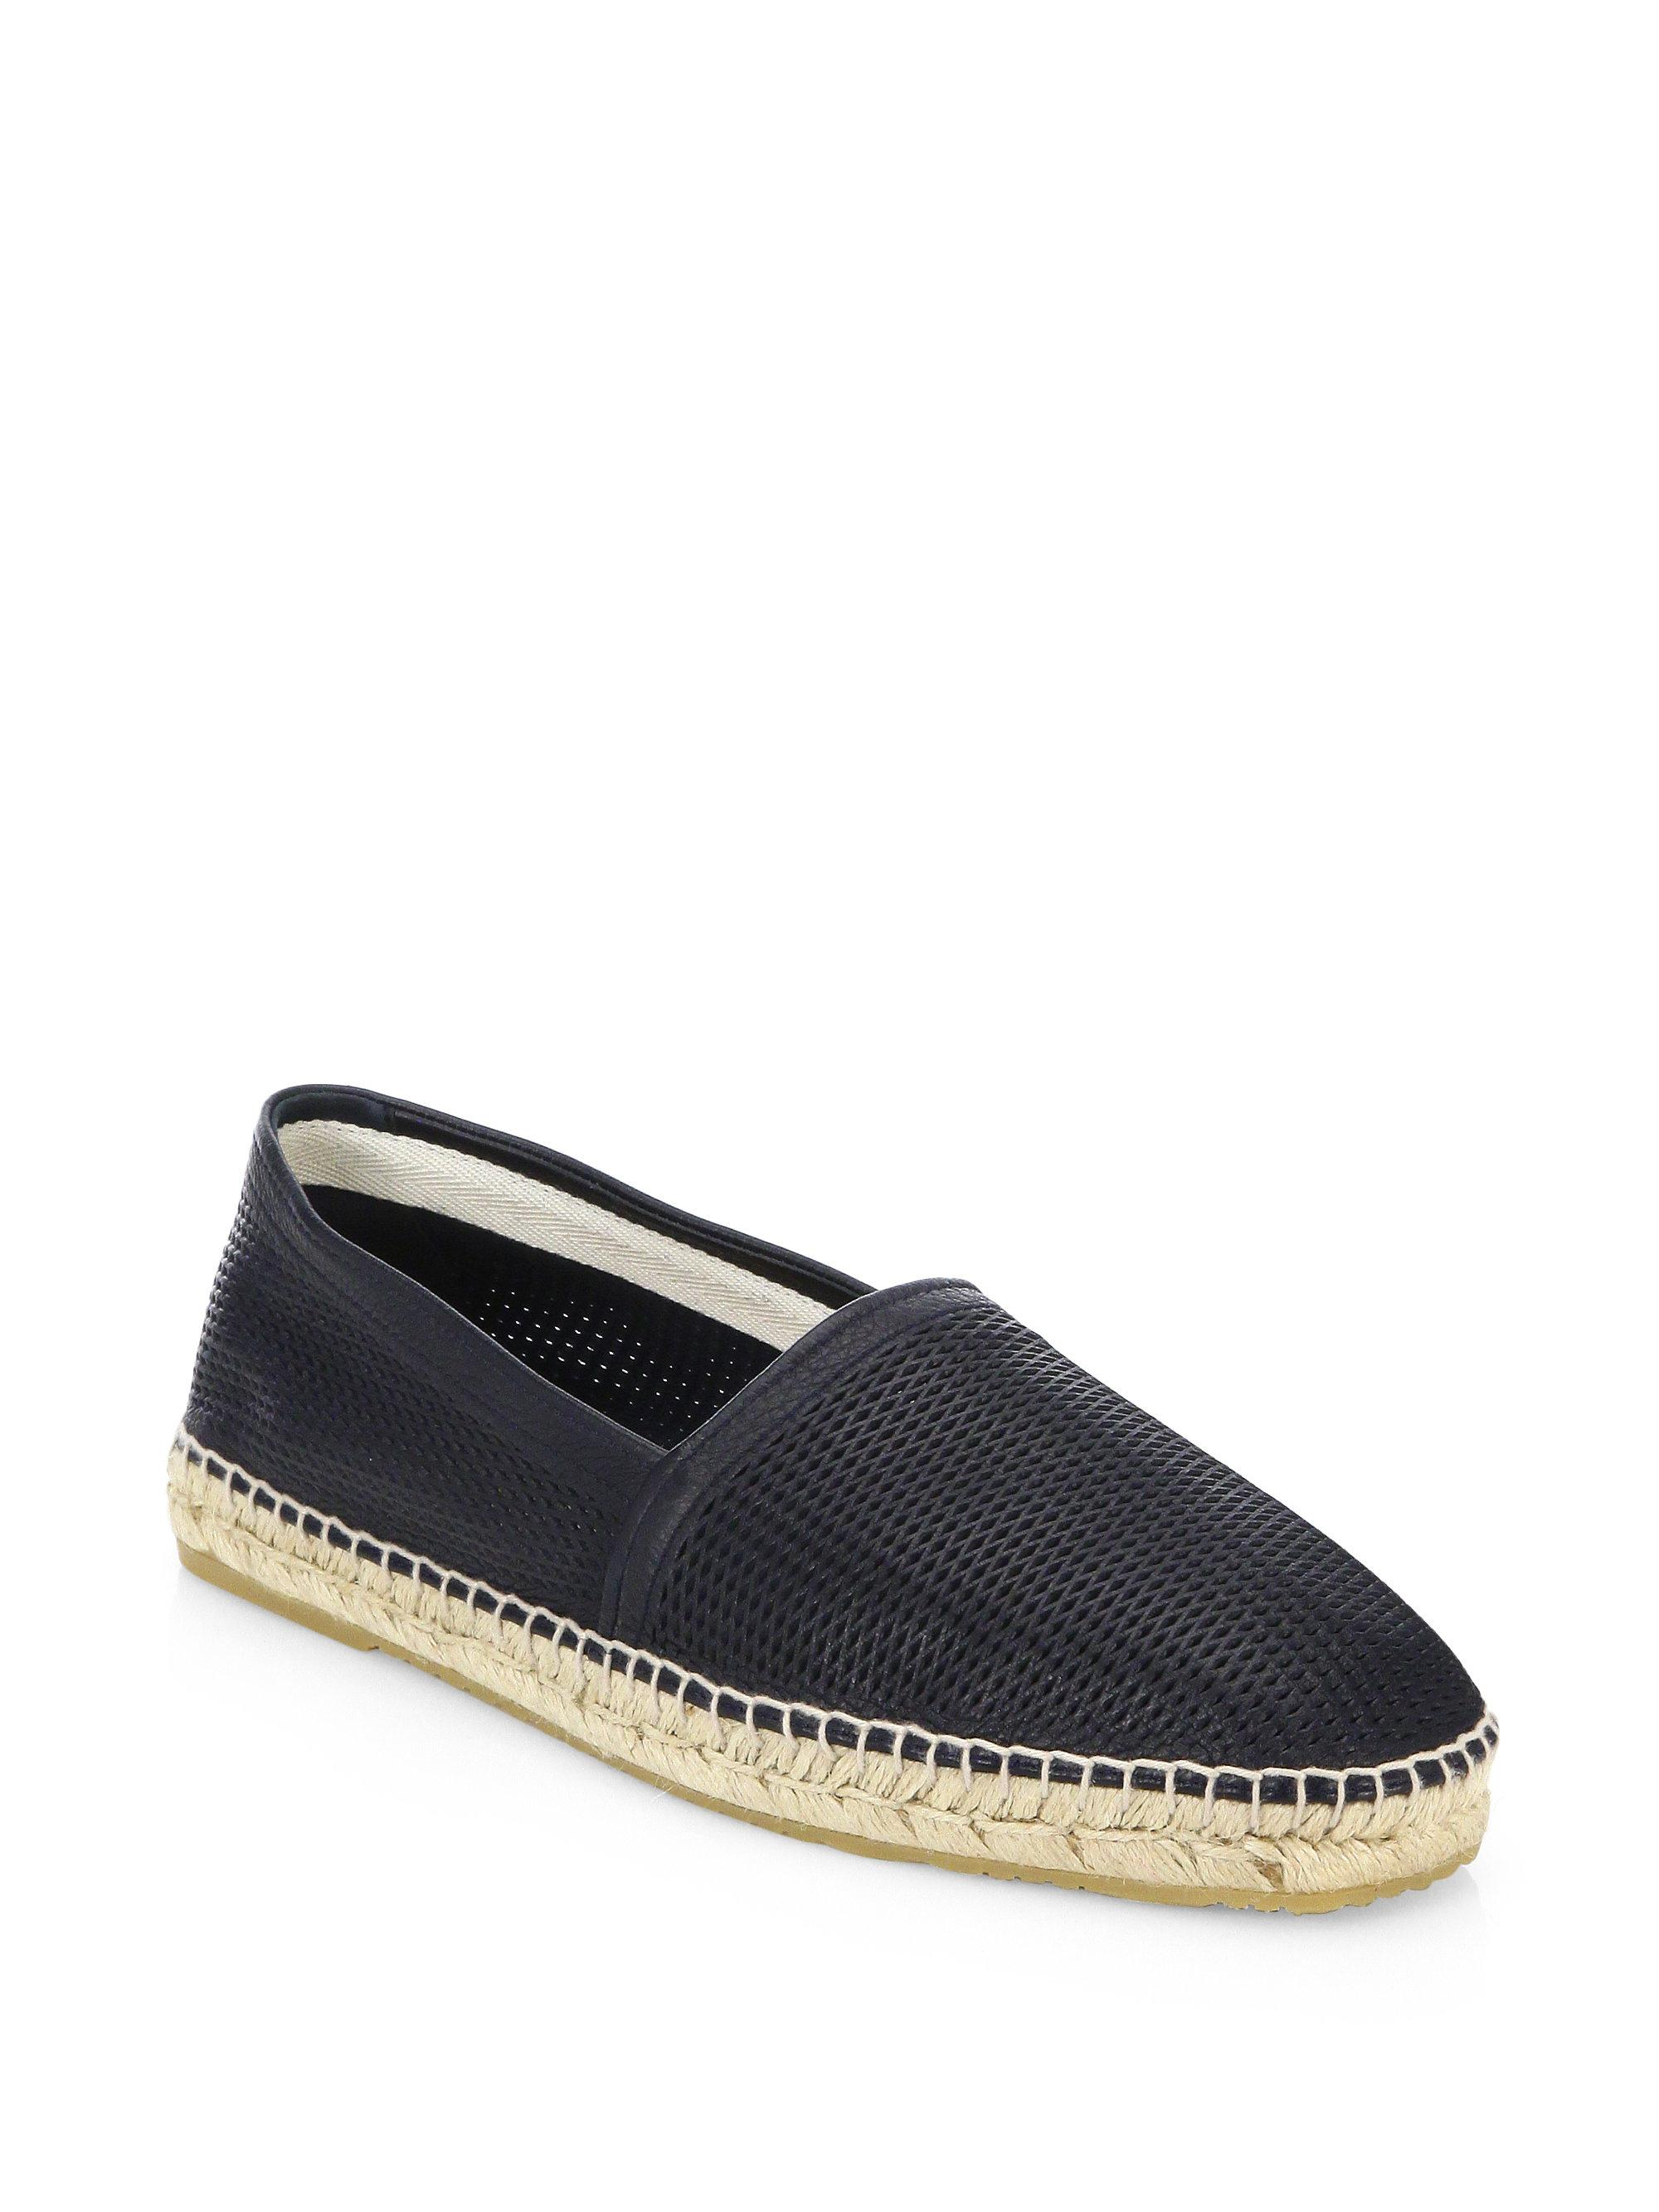 ArmaniPerforated Leather Espadrilles mzI5Fs